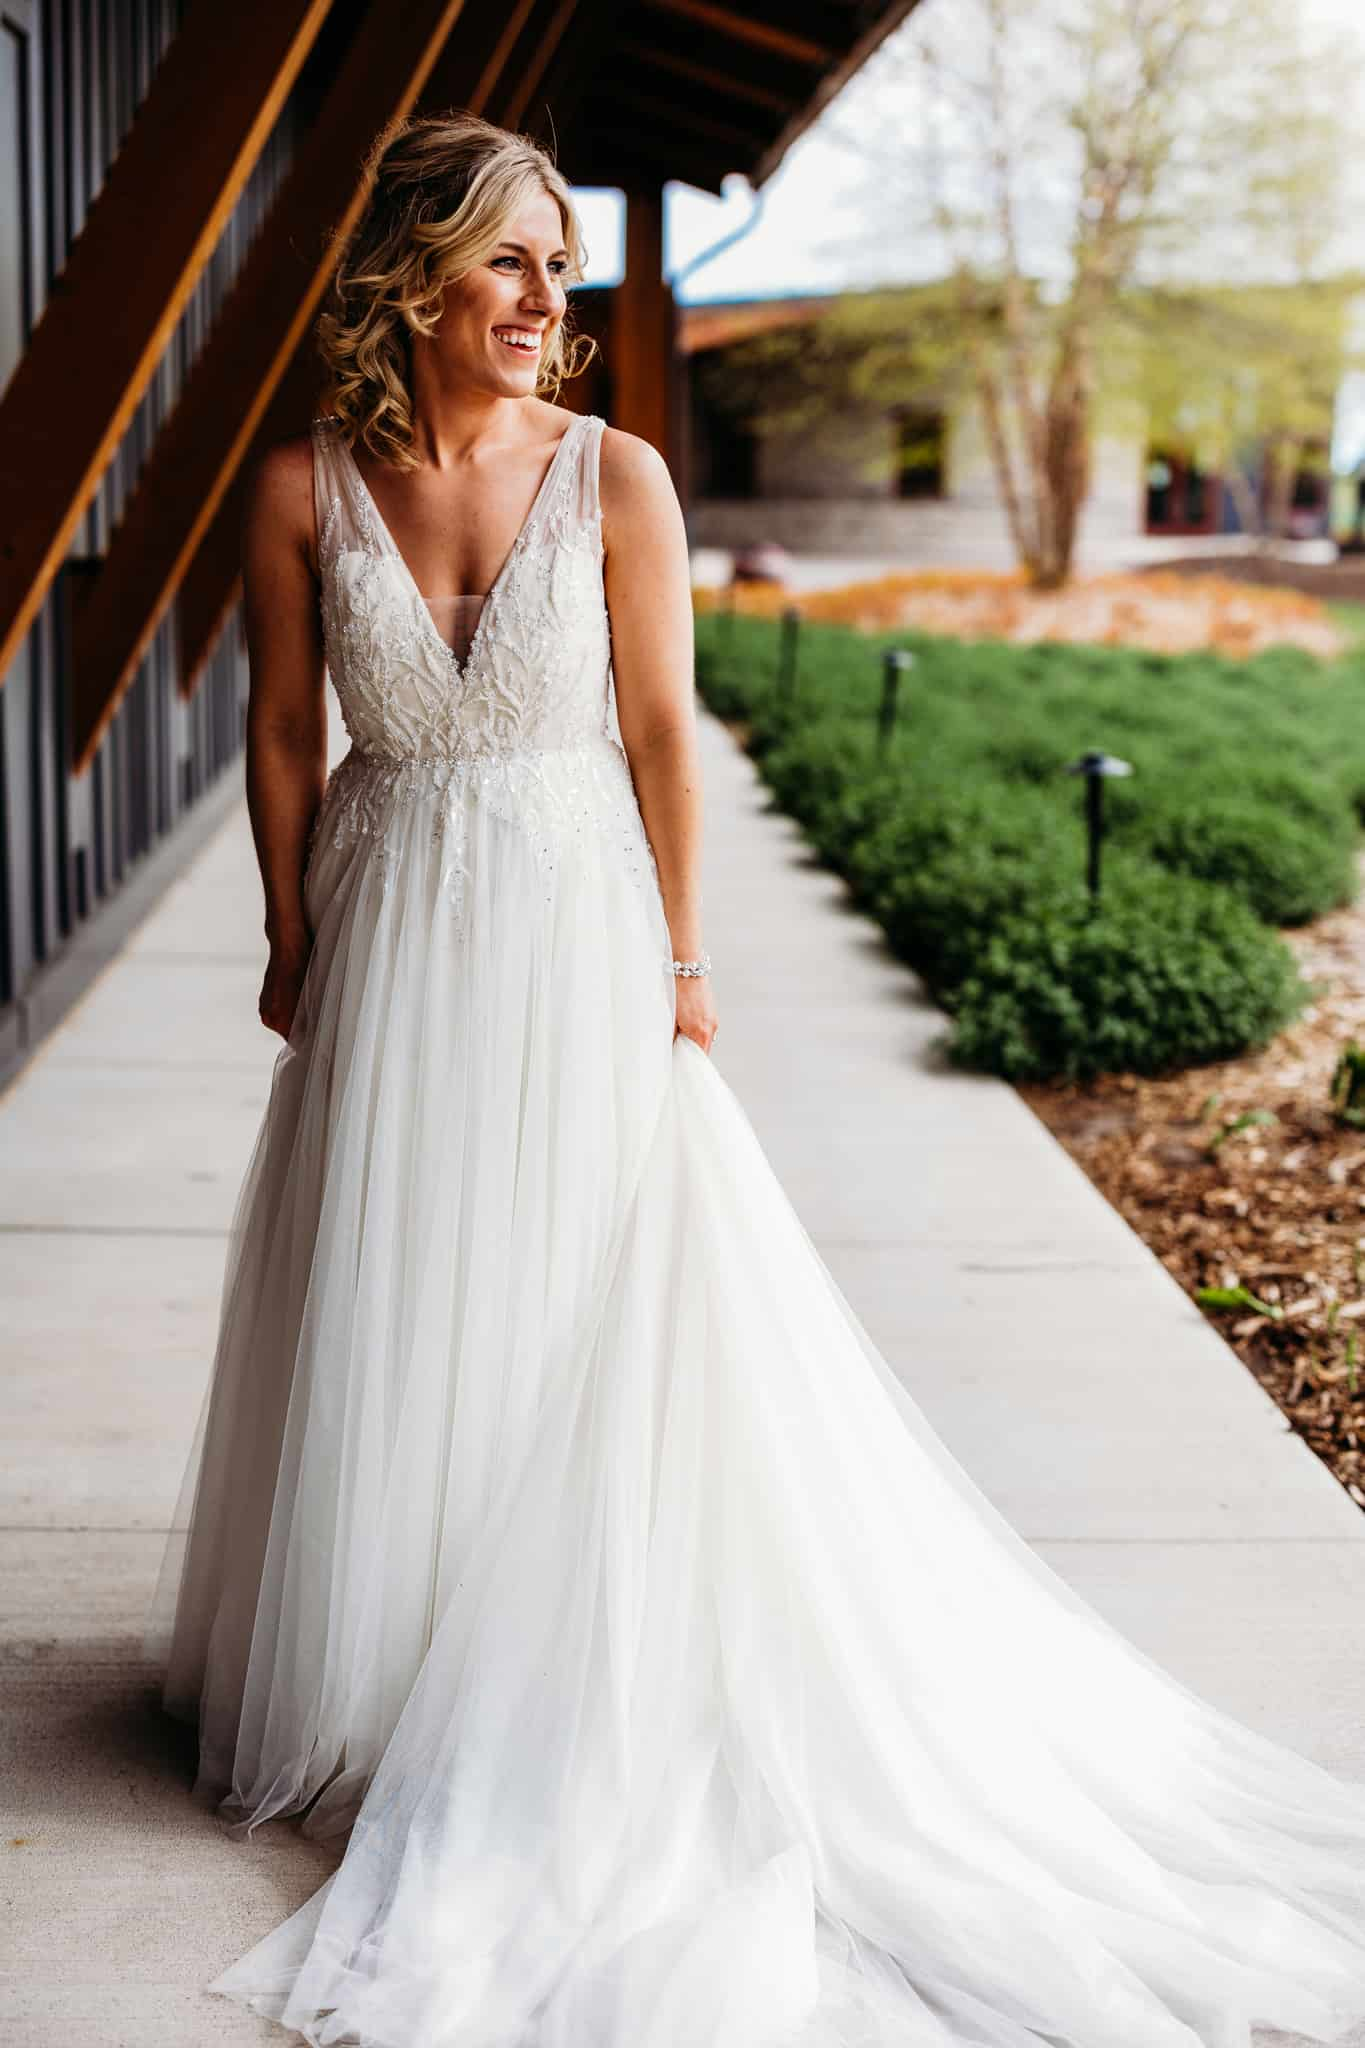 brides looks to her left as she poses outside the clubhouse at her Hazeltine national golf club wedding